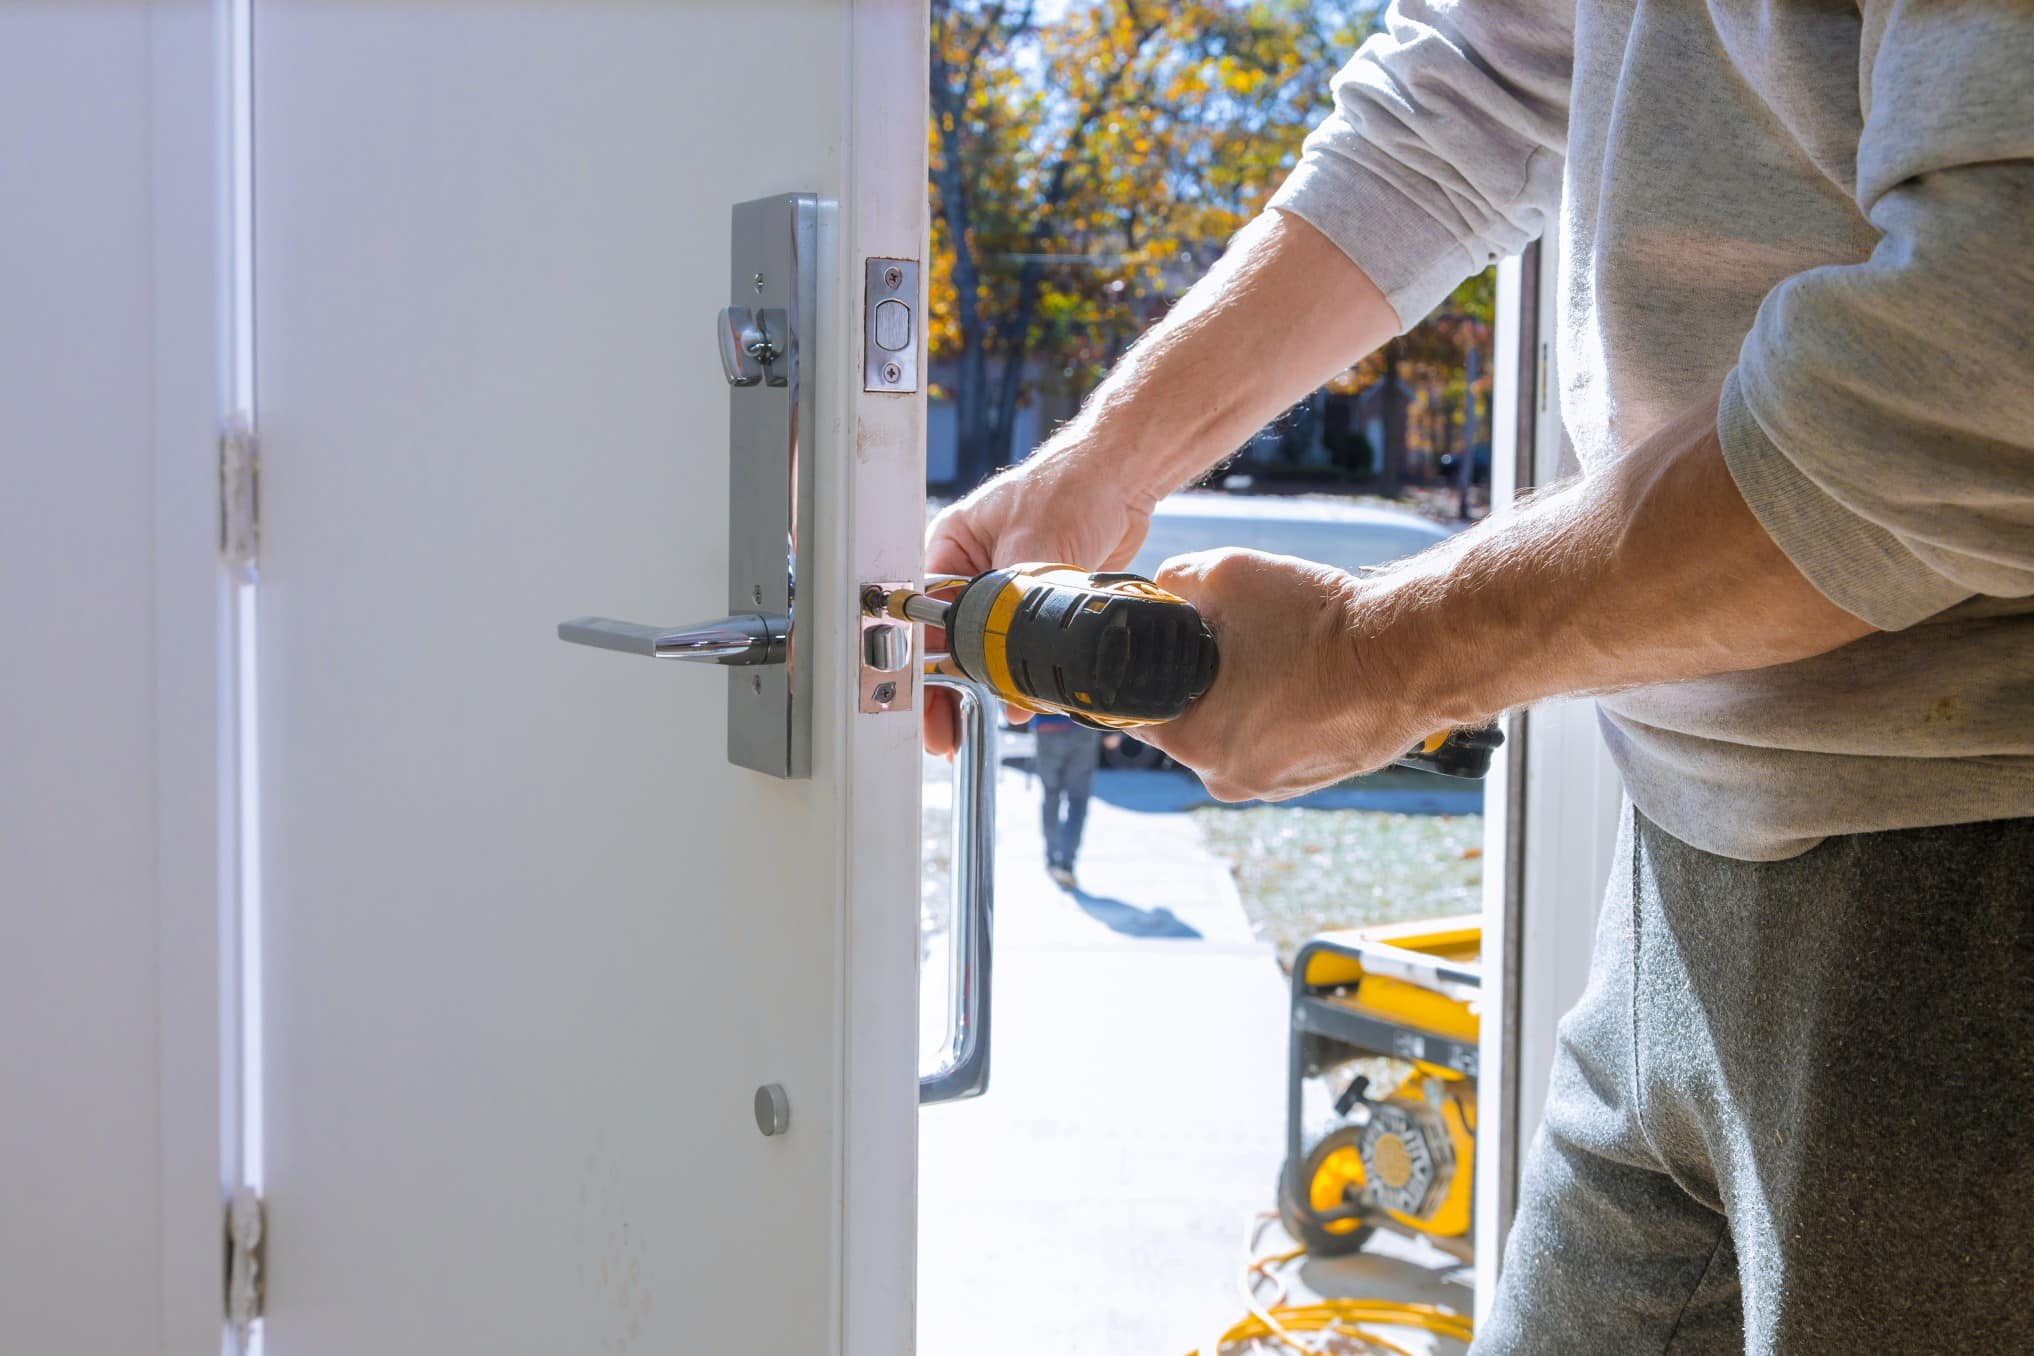 Here, one of our technicians uses a drill to install new door hardware.